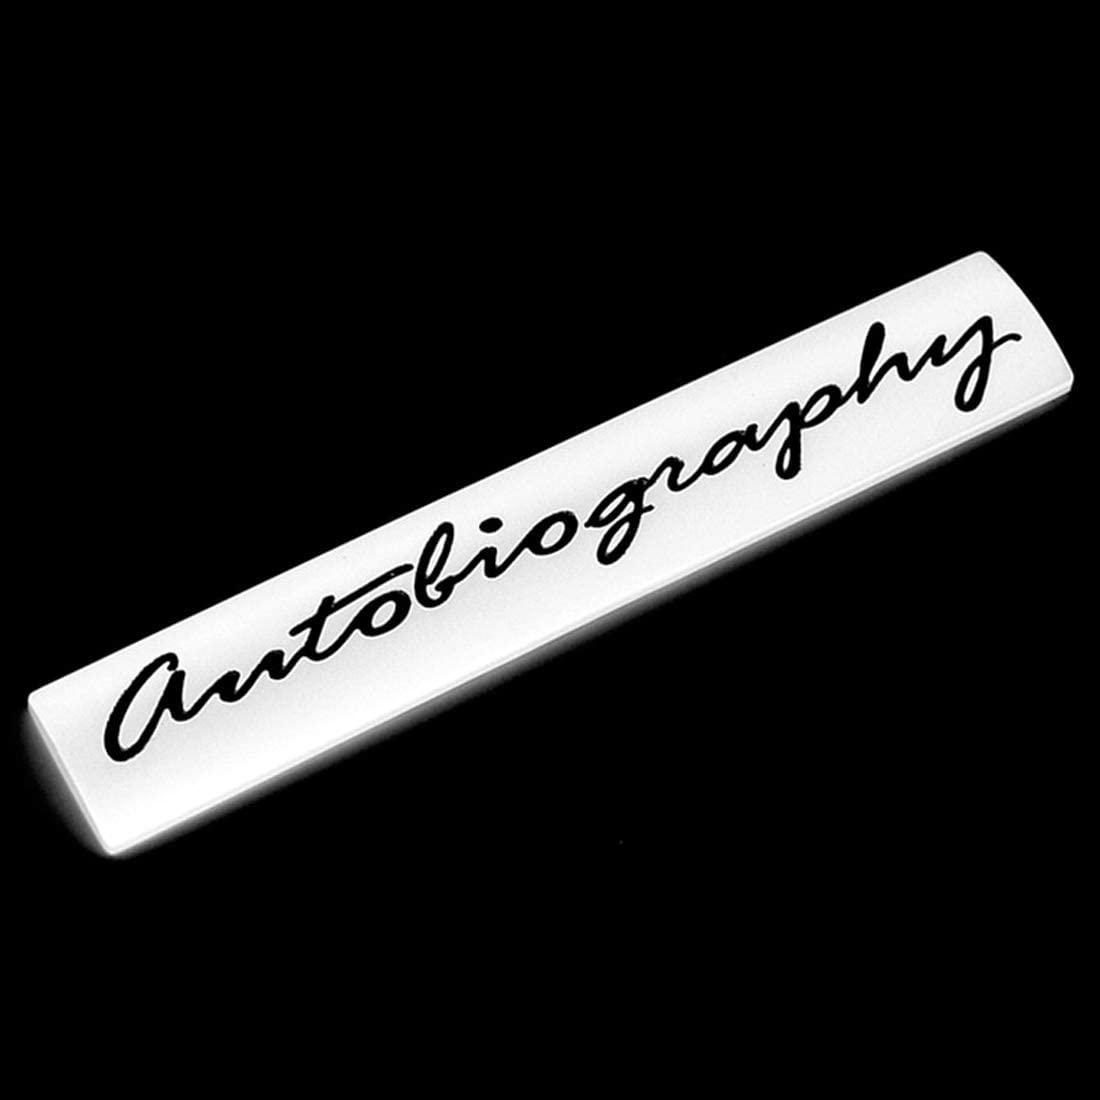 Autobaiography Supercharged Sport Car Sticker Metal Emblem Auto Badge Decal for Supercharged Range Rover Sport (red-Black)